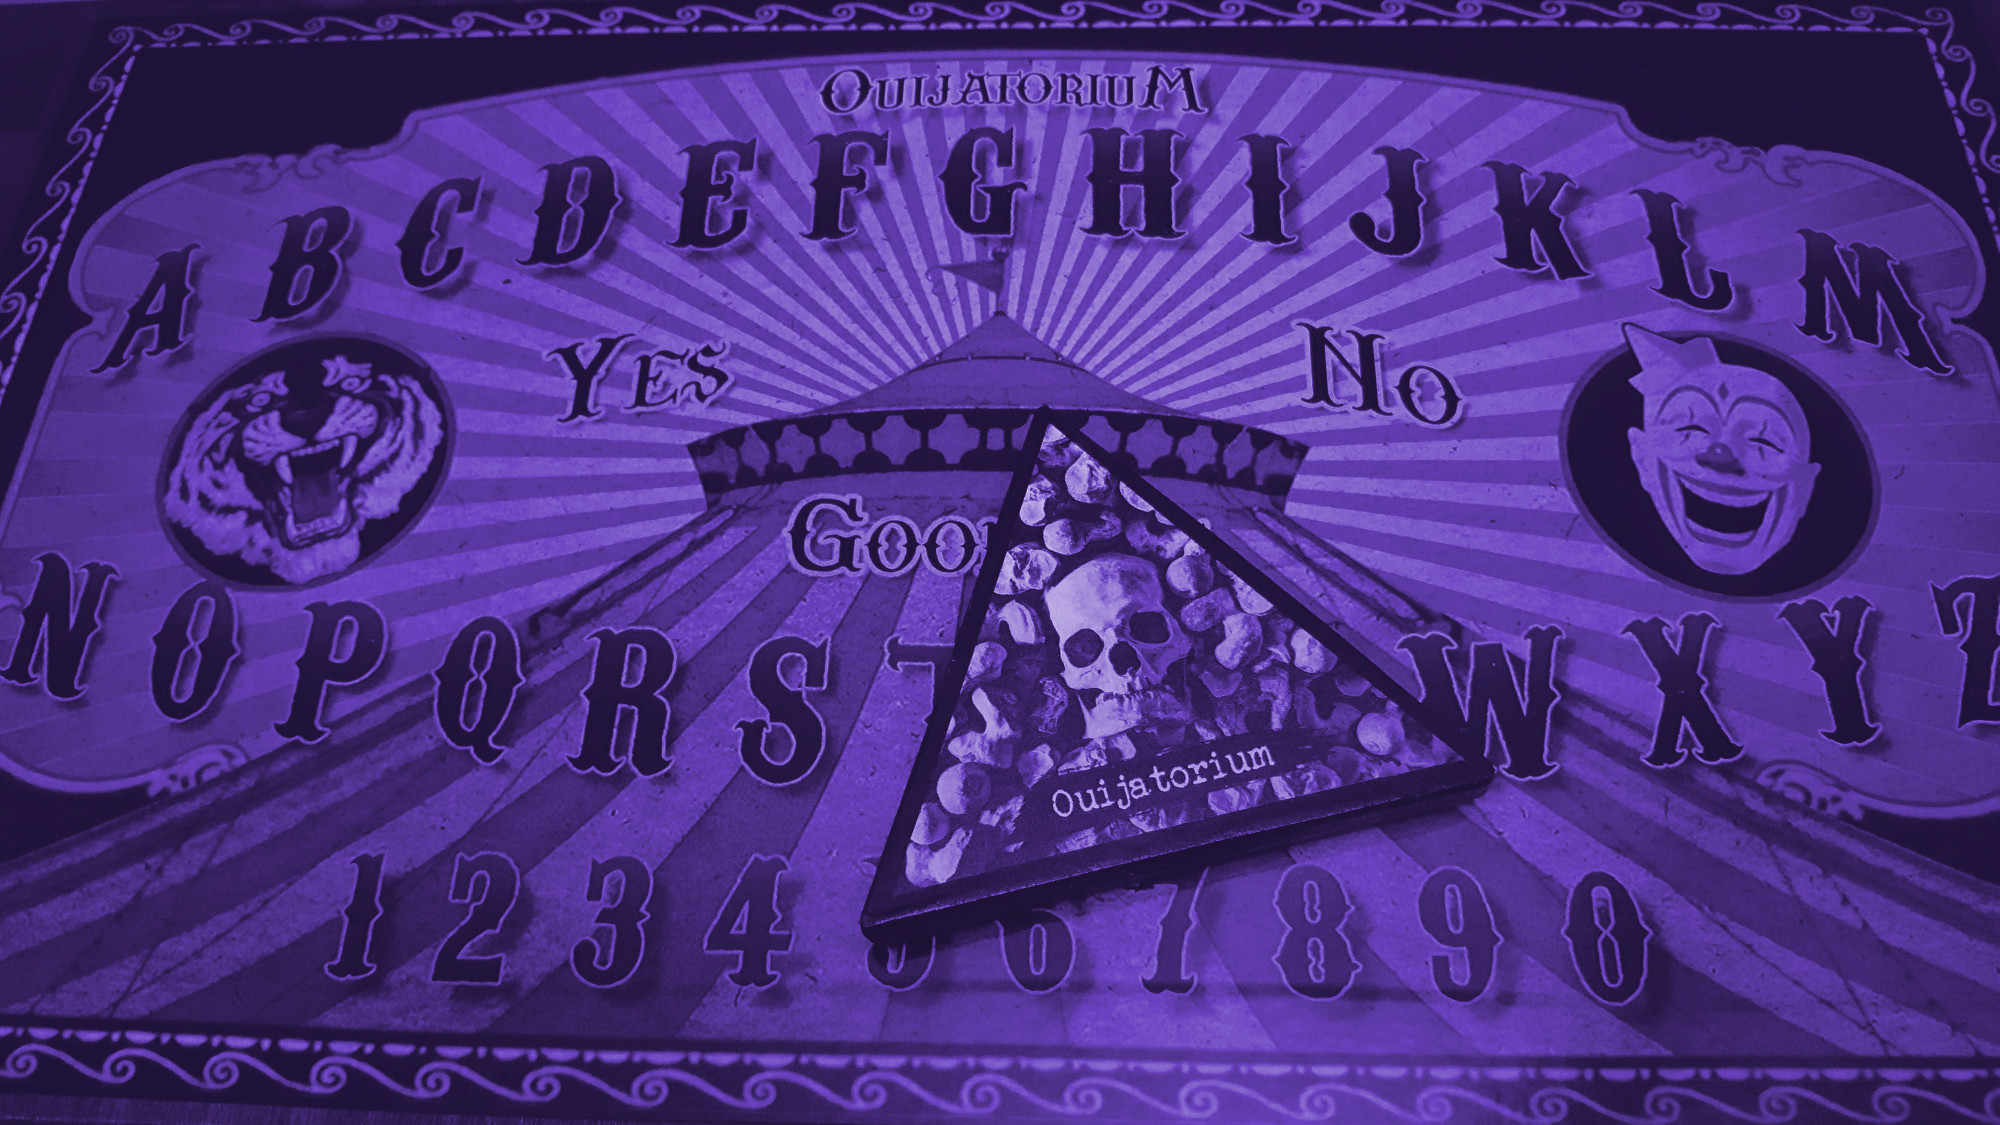 Episode 37 – The Ouija One